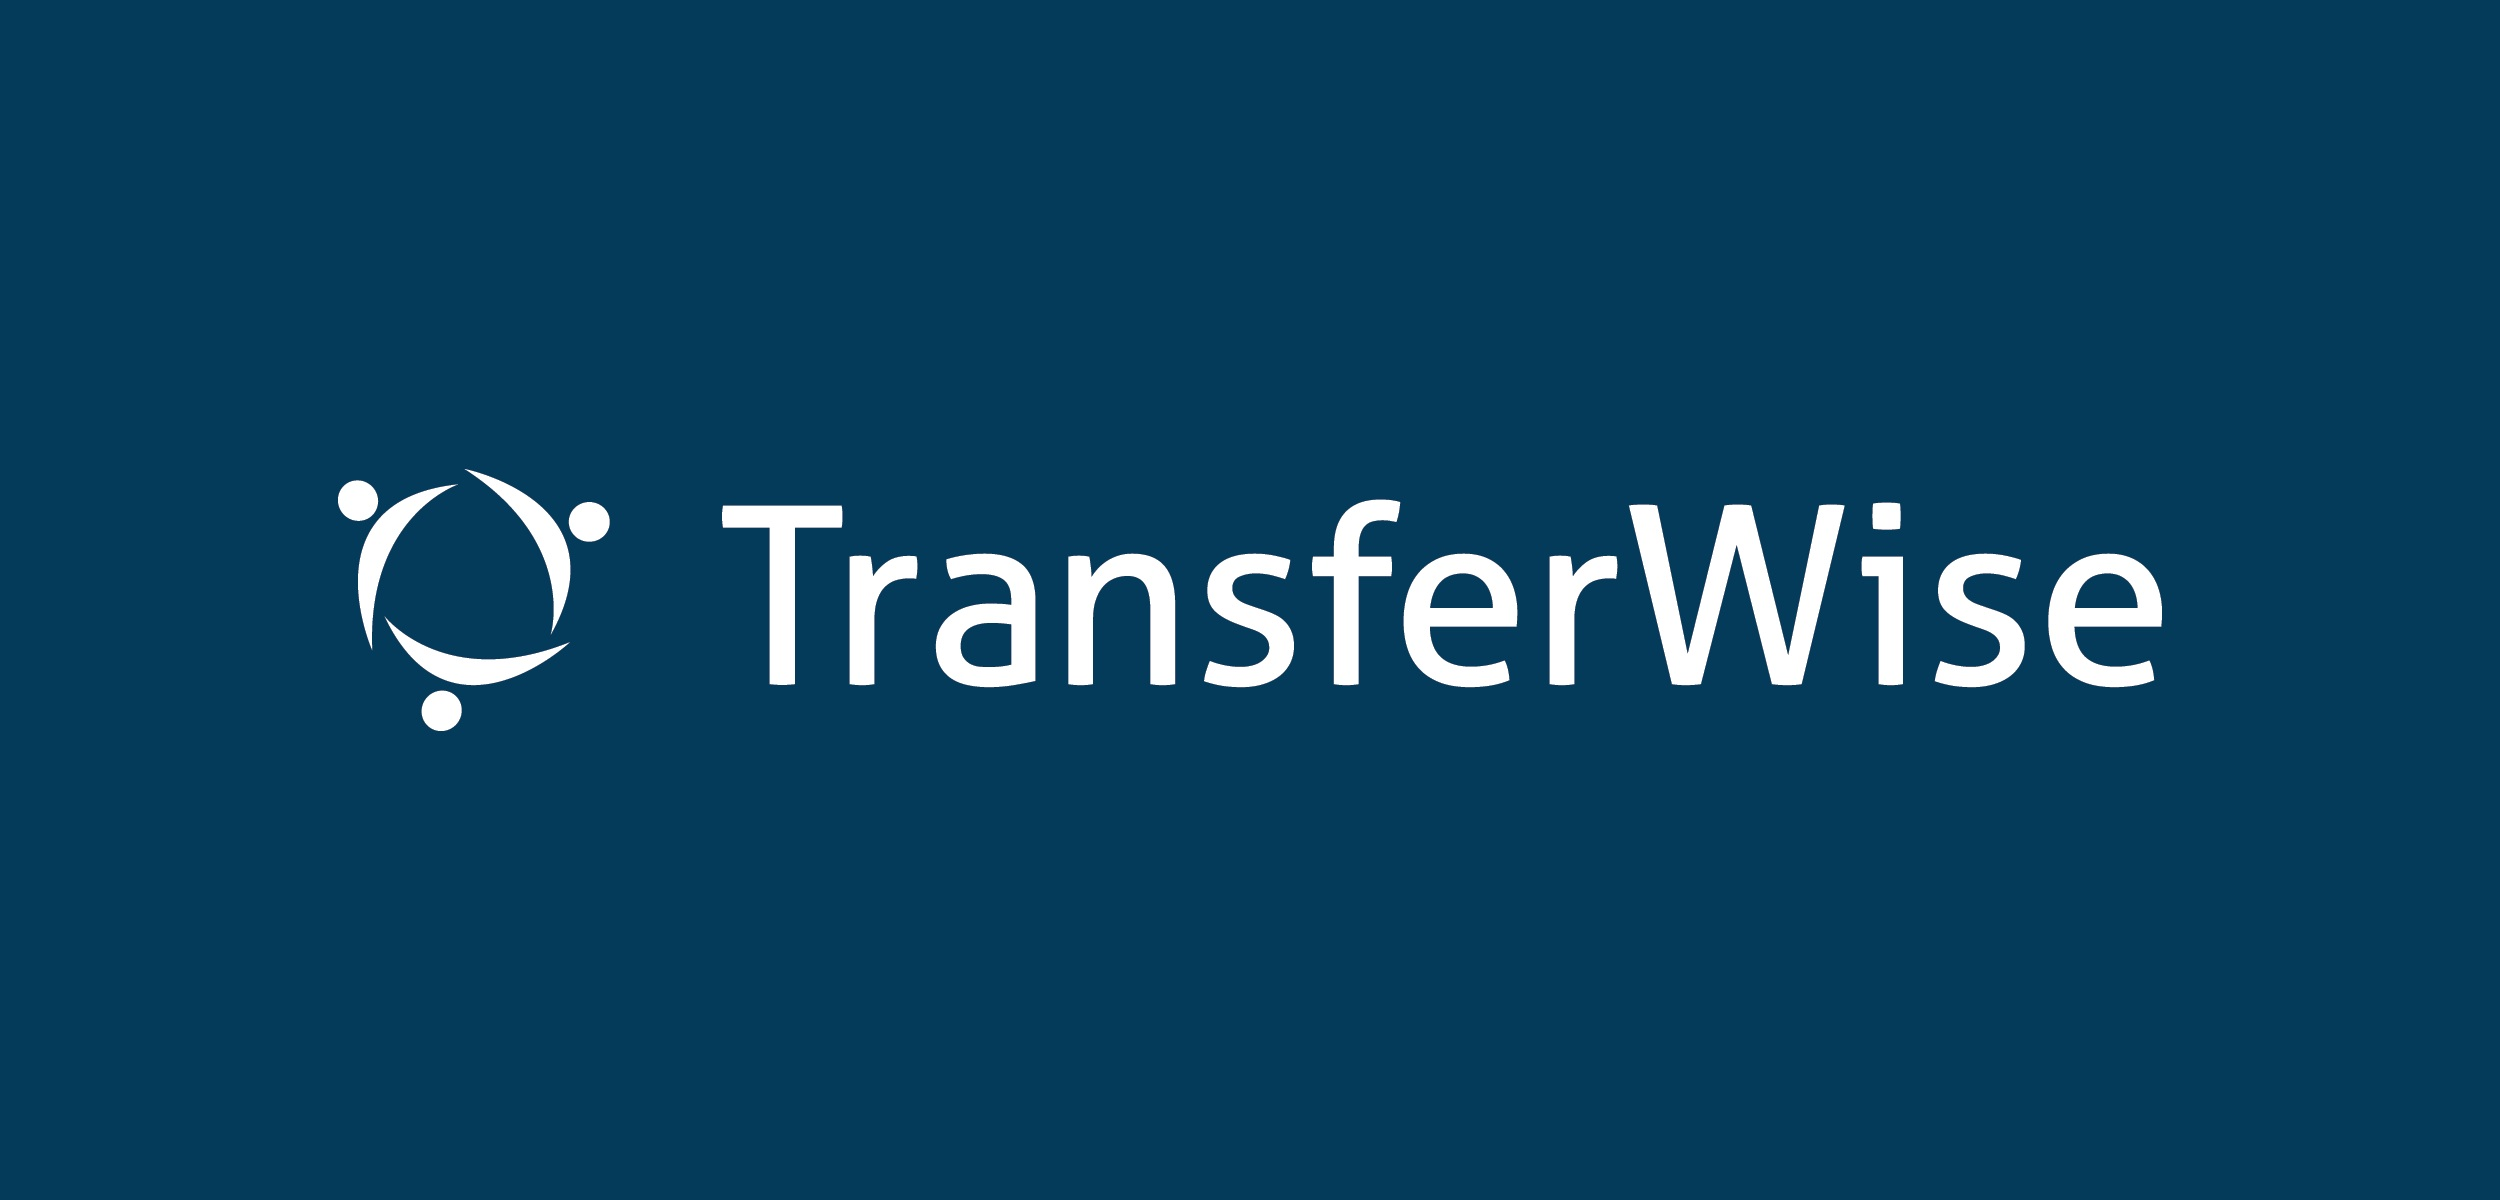 TransferWise Exceeds the £500m a Month Milestone